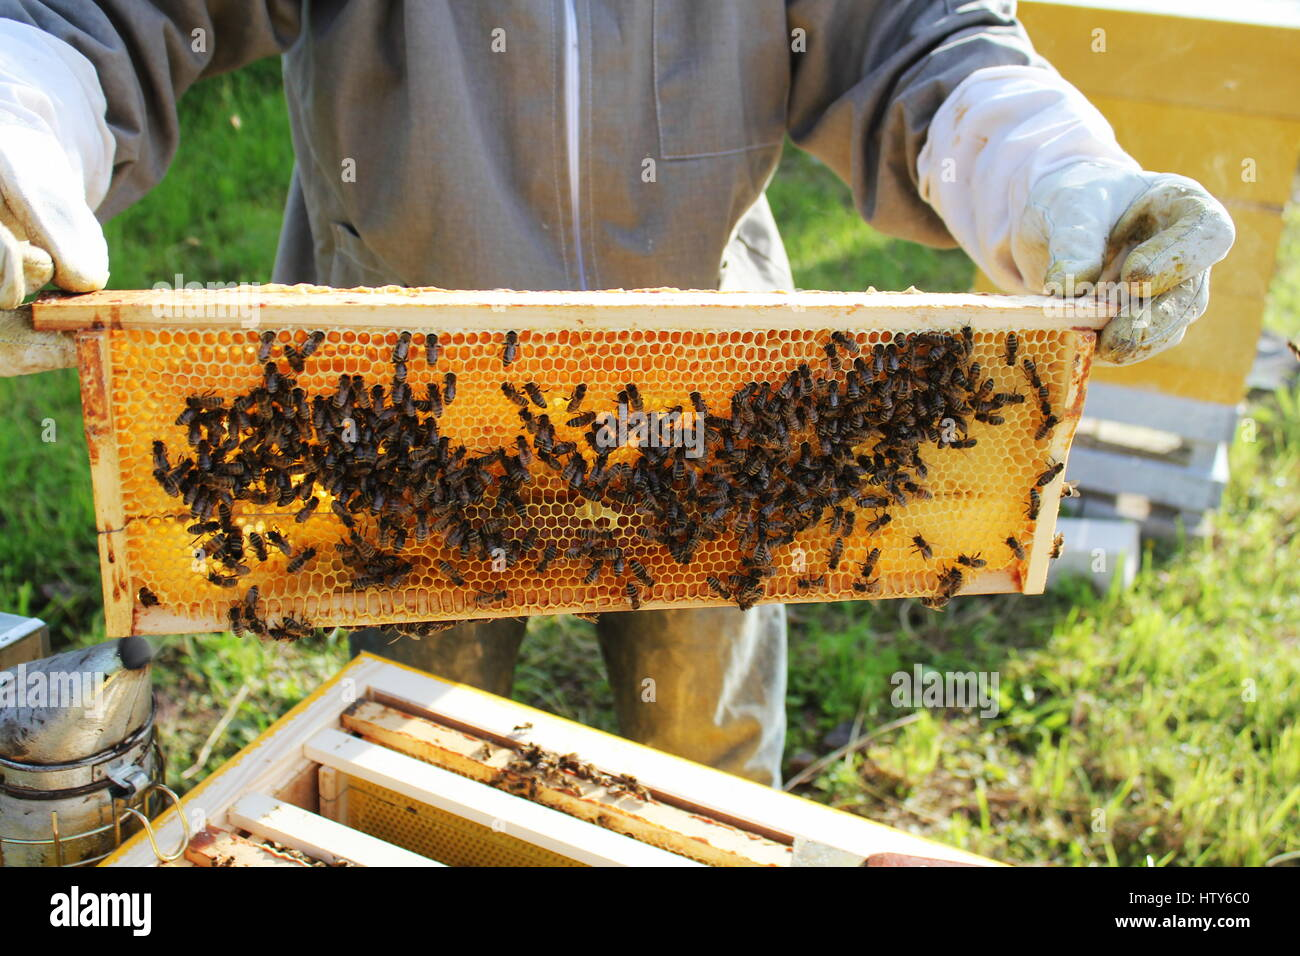 Beekeeper holds frame with honeycomb - Stock Image